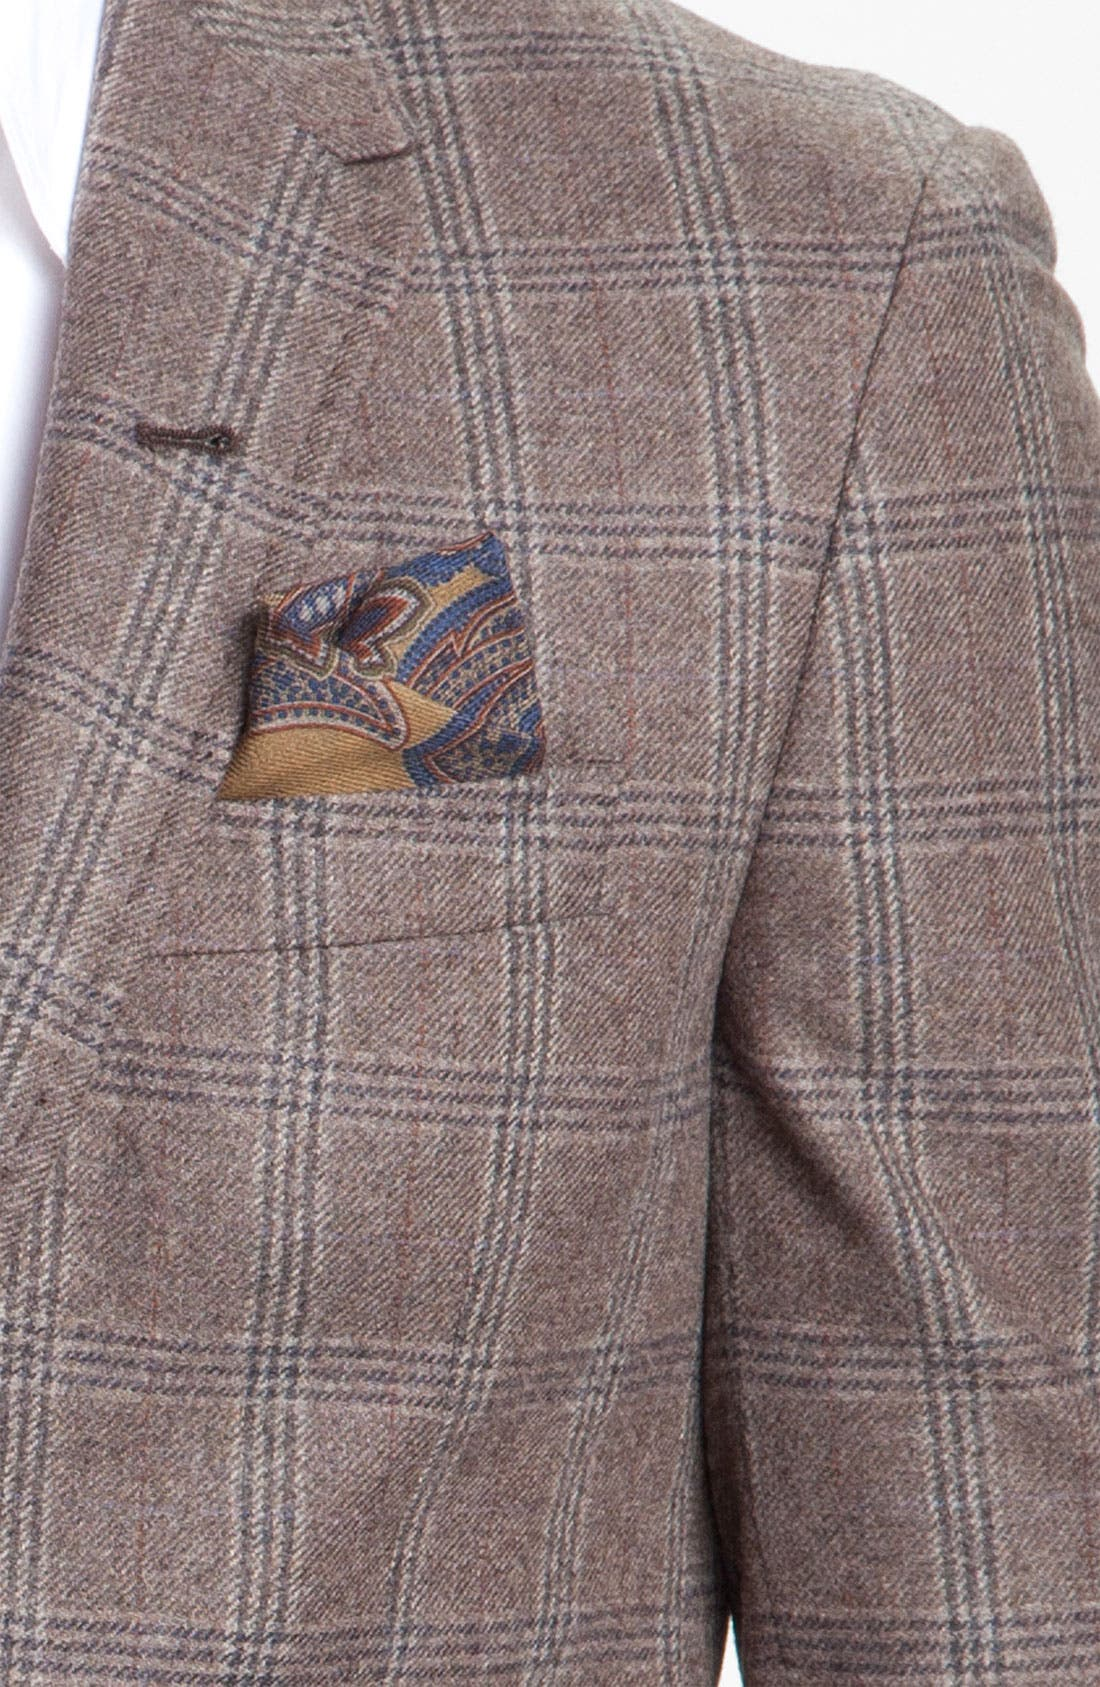 Alternate Image 3  - Paul Smith London Windowpane Plaid Blazer